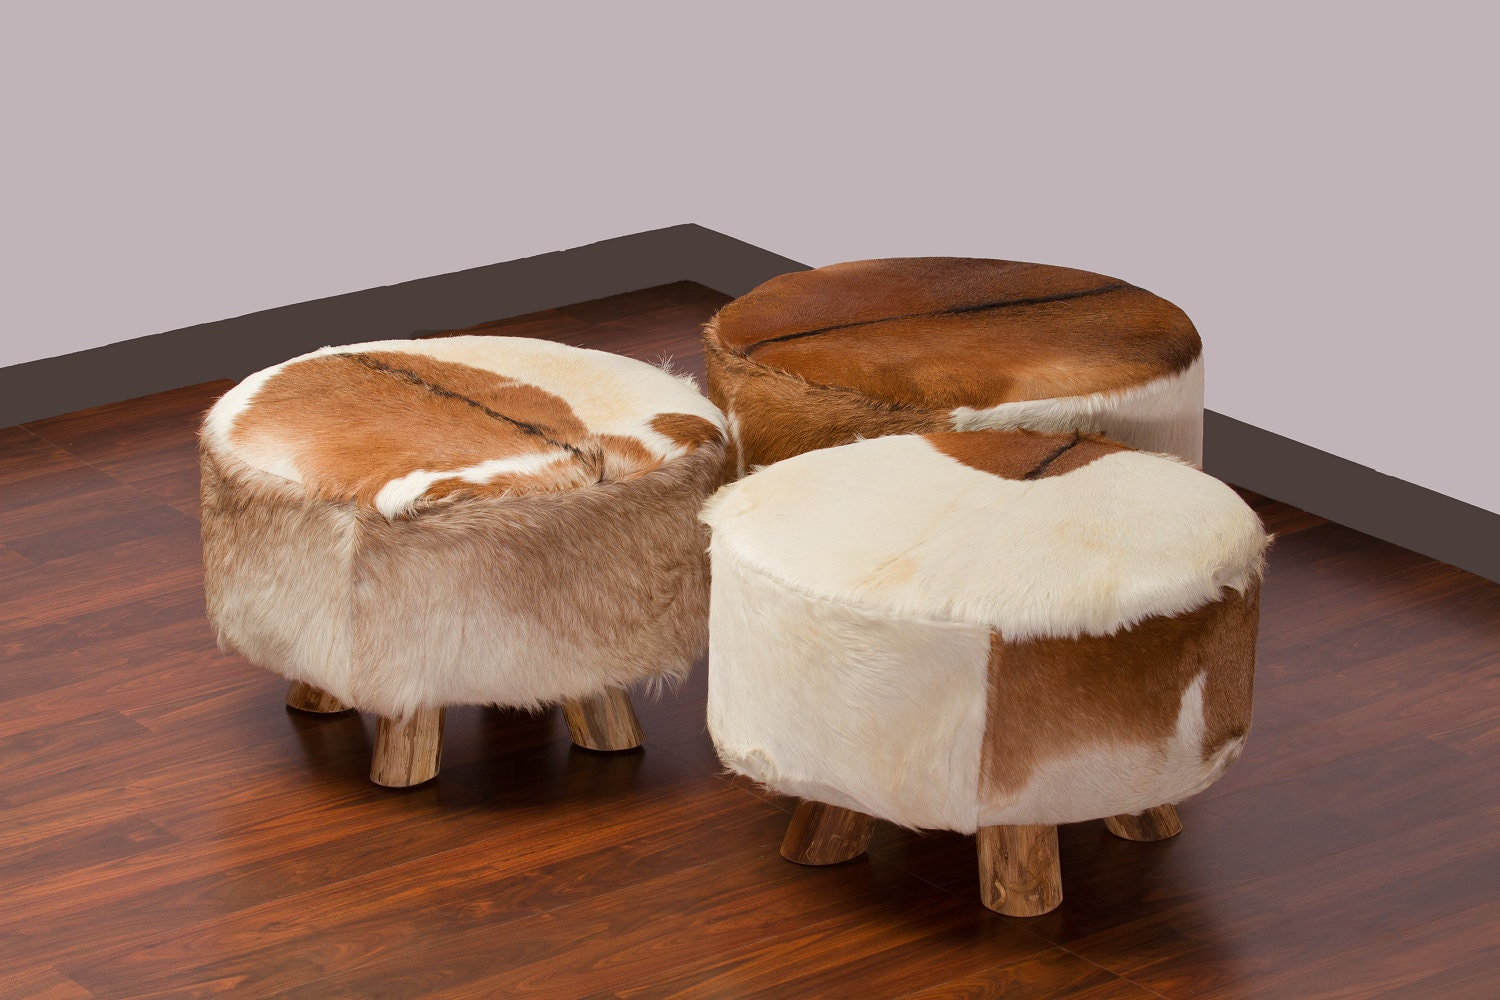 Large Round Ottoman : Brown/White Large Round Leather/Cowhide Ottoman. FREE by BareDecor